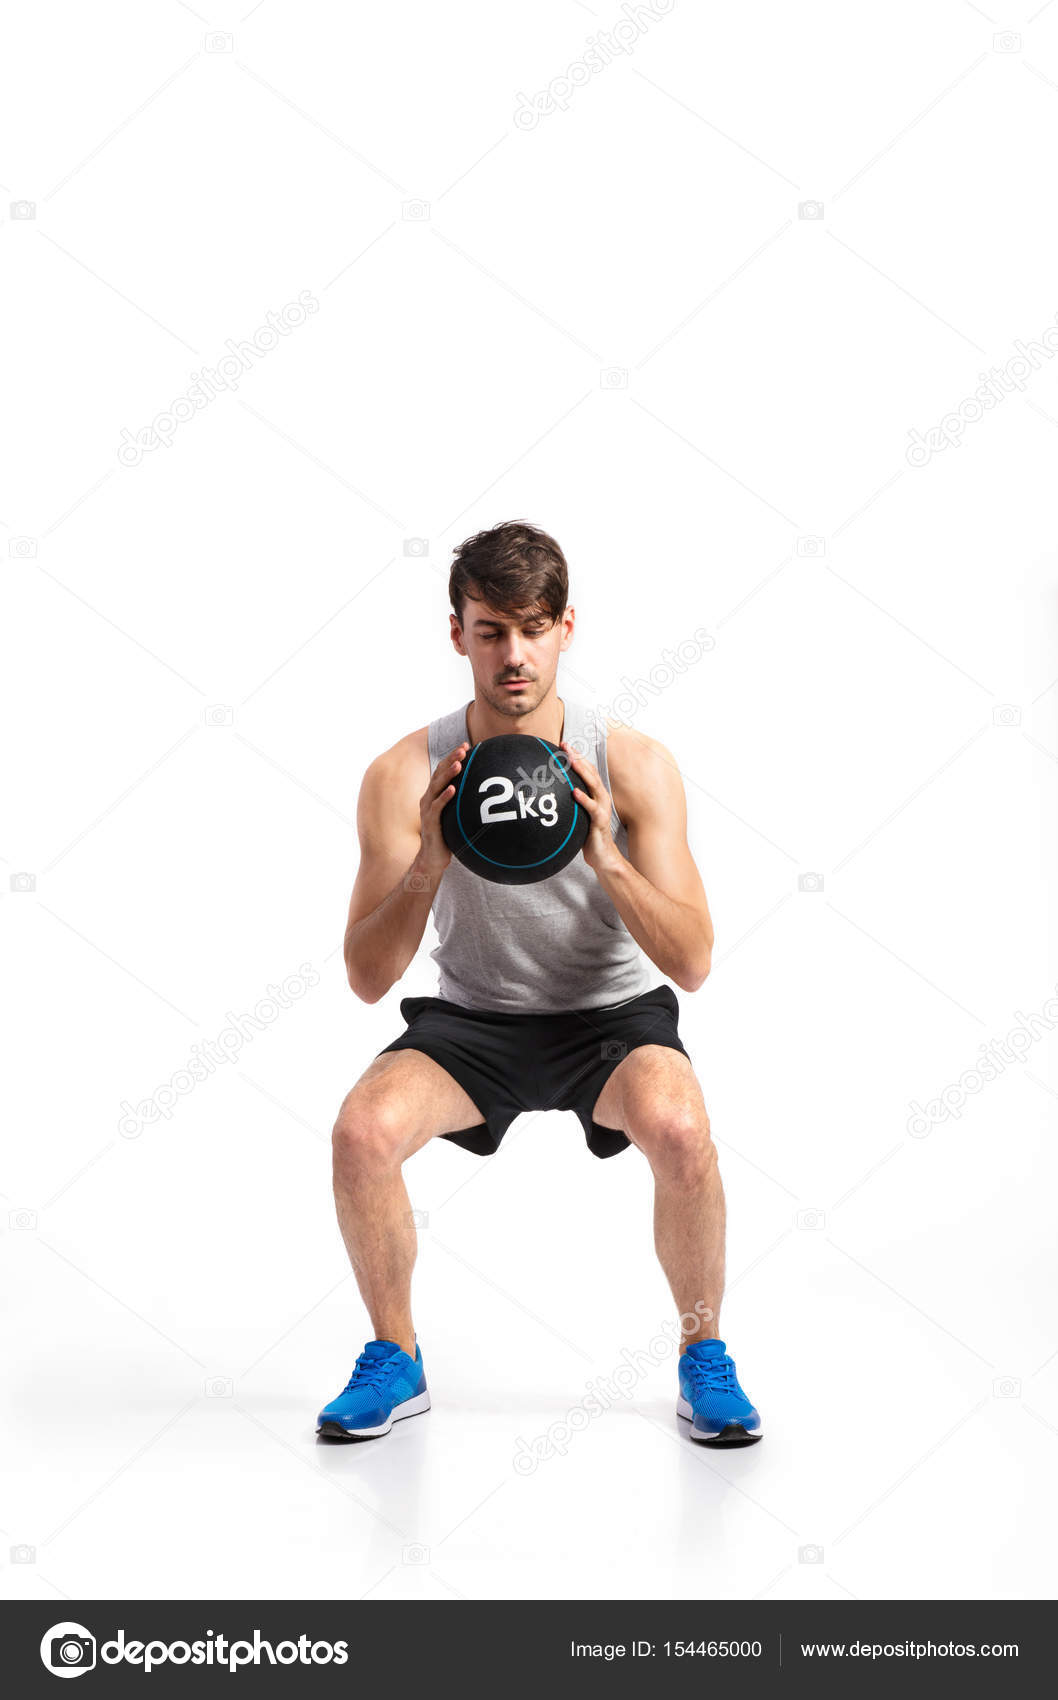 cdbb8d746f6b6 Handsome hipster fitness man in gray tank top shirt and black shorts holding  medicine ball